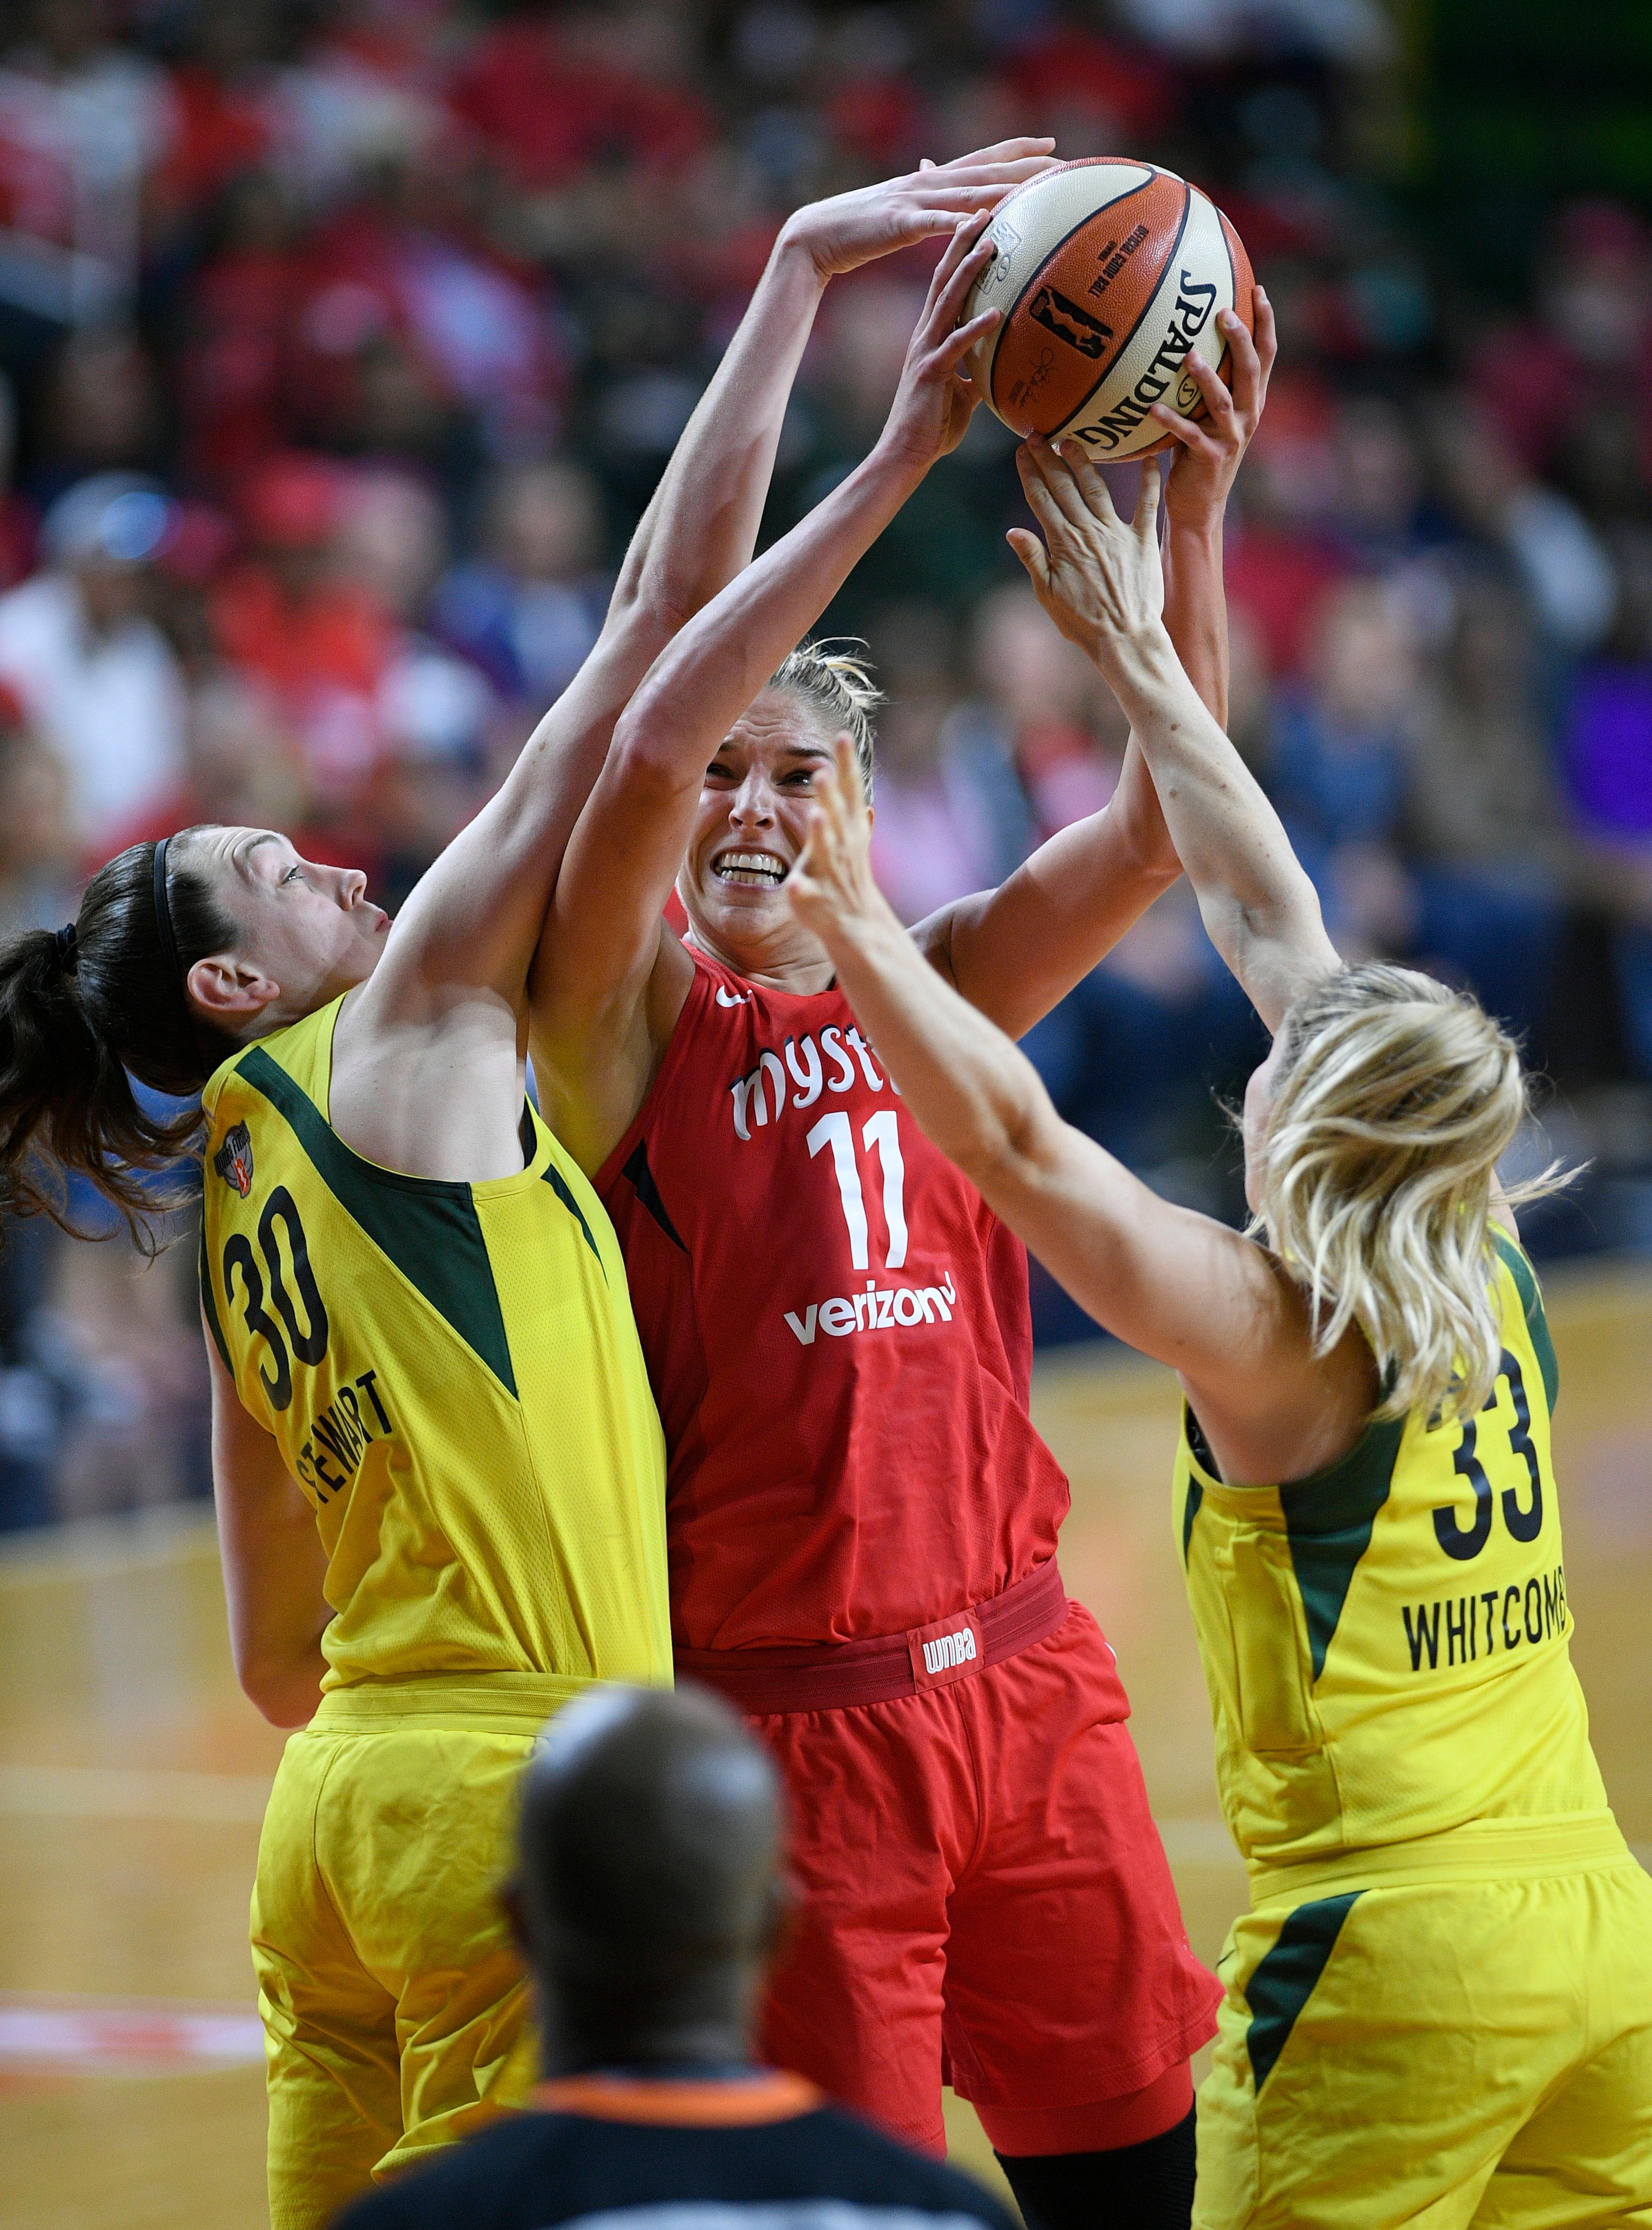 Washington Mystics forward Elena Delle Donne (11) goes to the basket as she was fouled by Seattle Storm forward Breanna Stewart (30) during the second half of Game 3 of the WNBA basketball finals, Wednesday, Sept. 12, 2018, in Fairfax, Va. Also seen is Storm guard Sami Whitcomb (33). The Storm won 98-82 and the title. (AP Photo/Nick Wass)